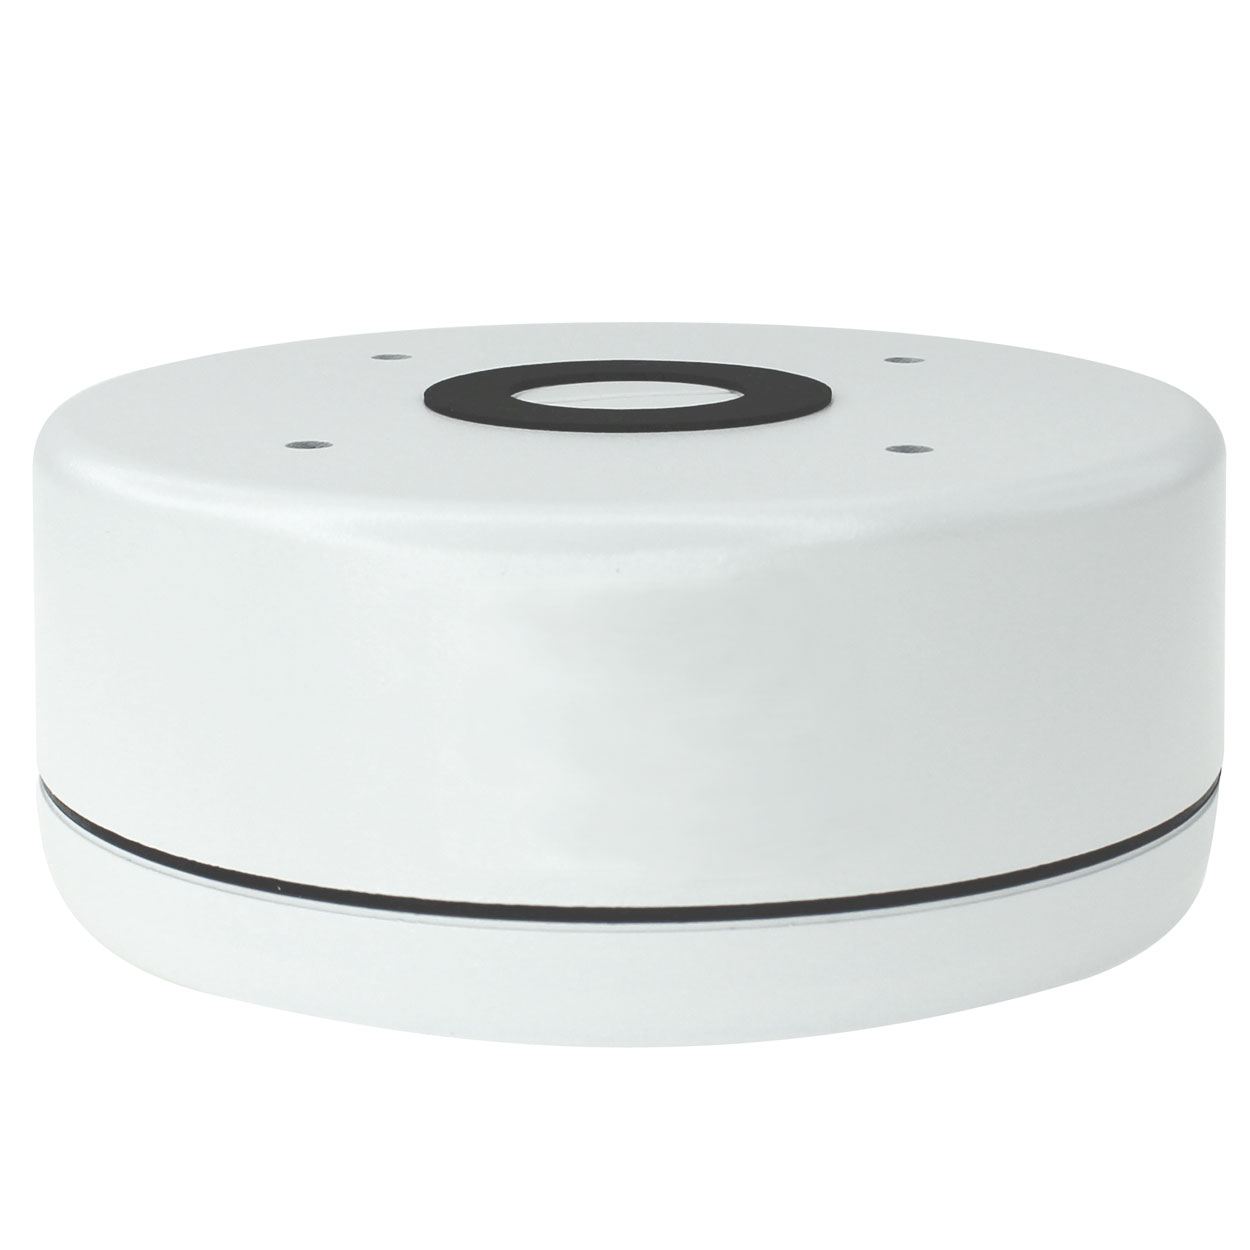 Junction Box for Bullet and Dome Cameras, 5.8 x 2.3 inches - White